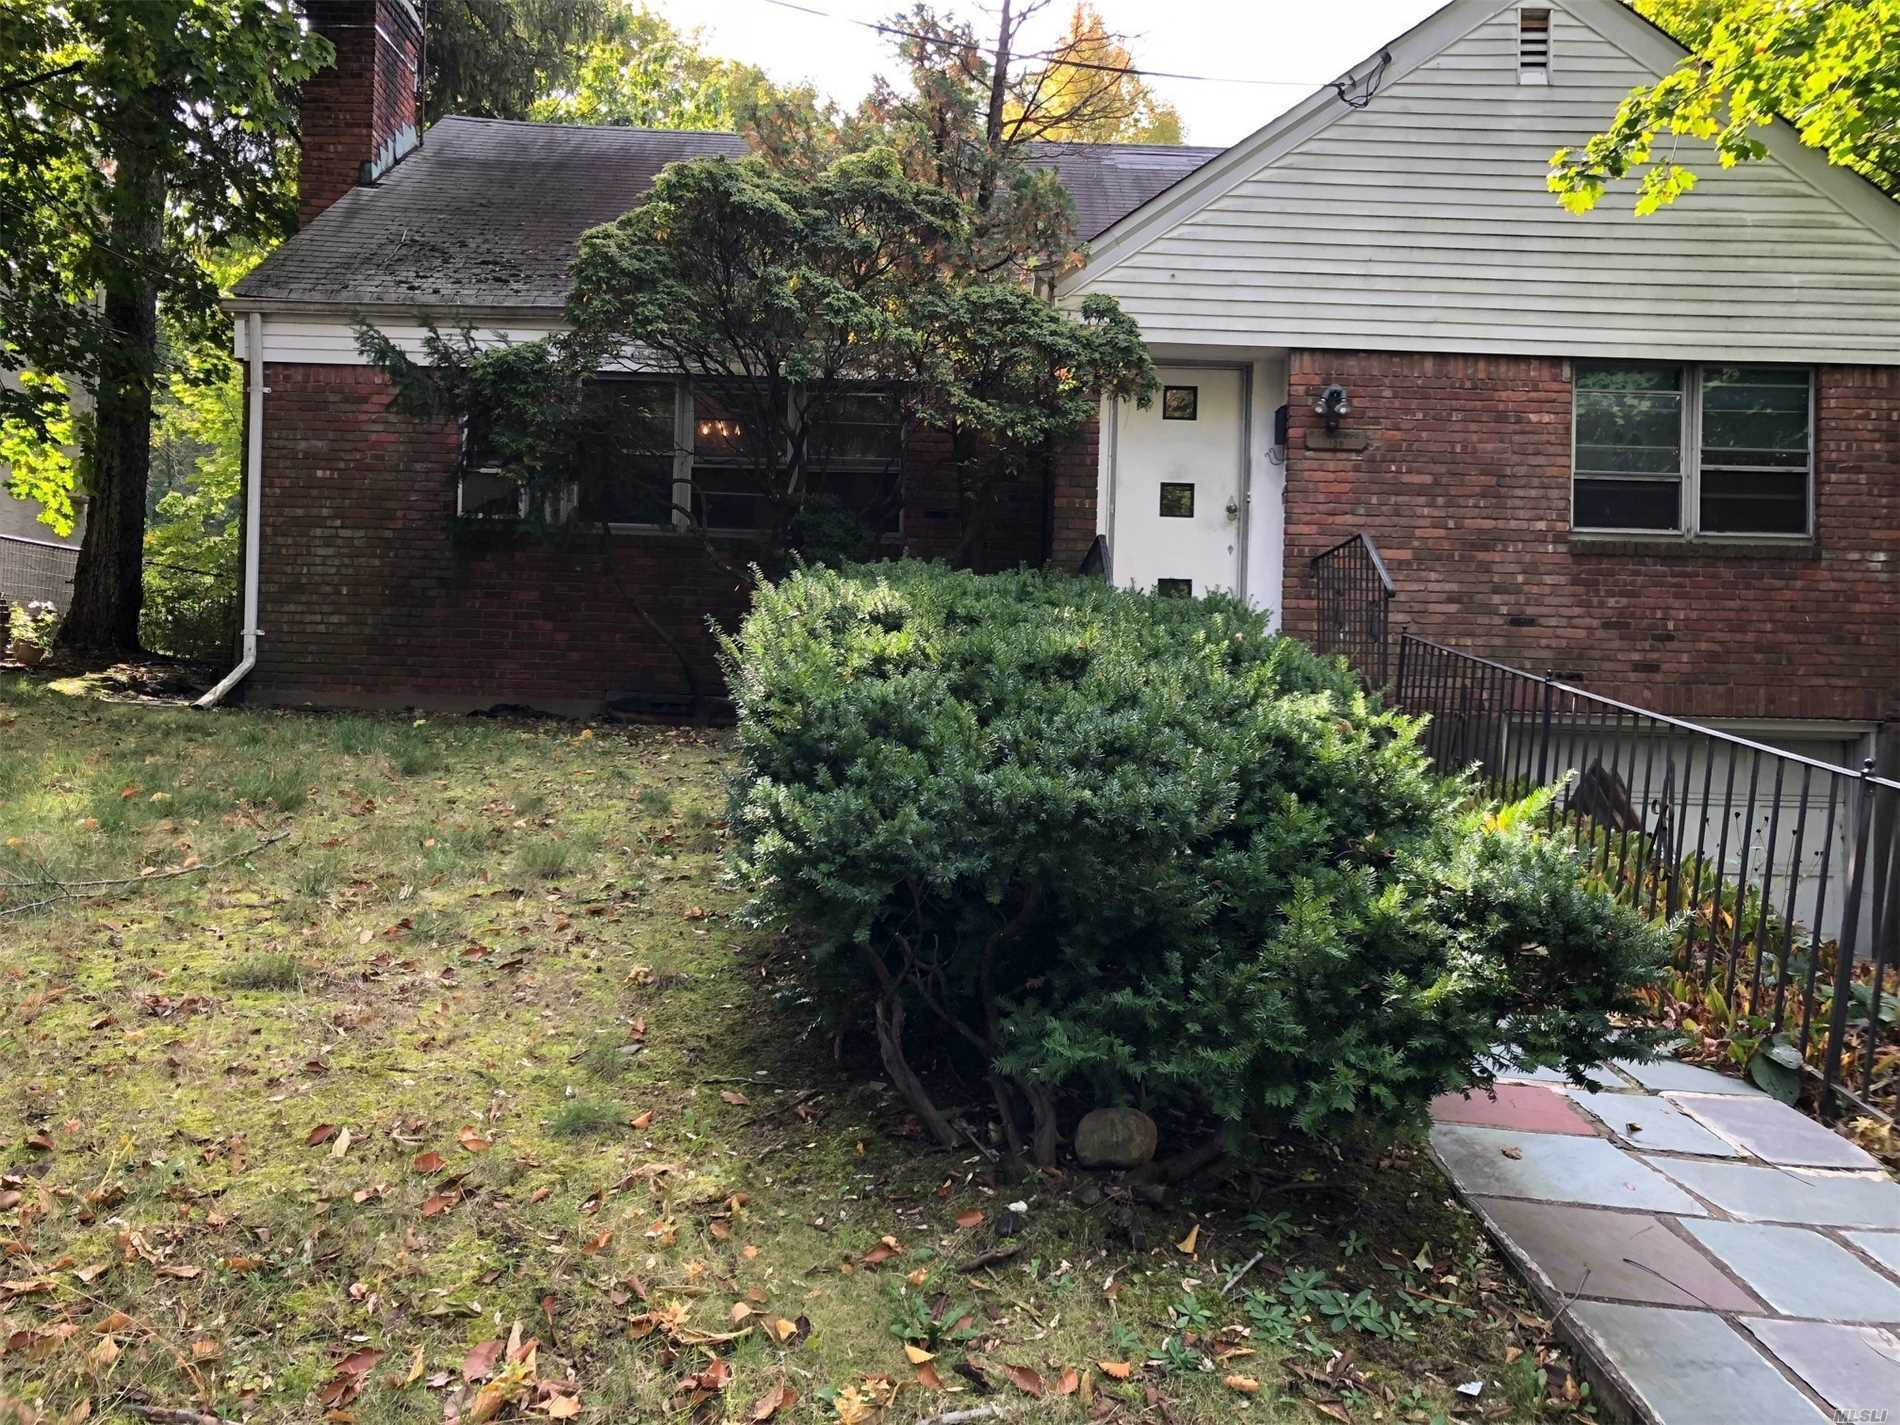 Great Opportunity To Make This 4 Br 2 Bath Cape Your Own. Large Wooded Property Conveniently Located To Town, Train, Shopping And Worship. Great Neck Park District. Property Is Sold As Is